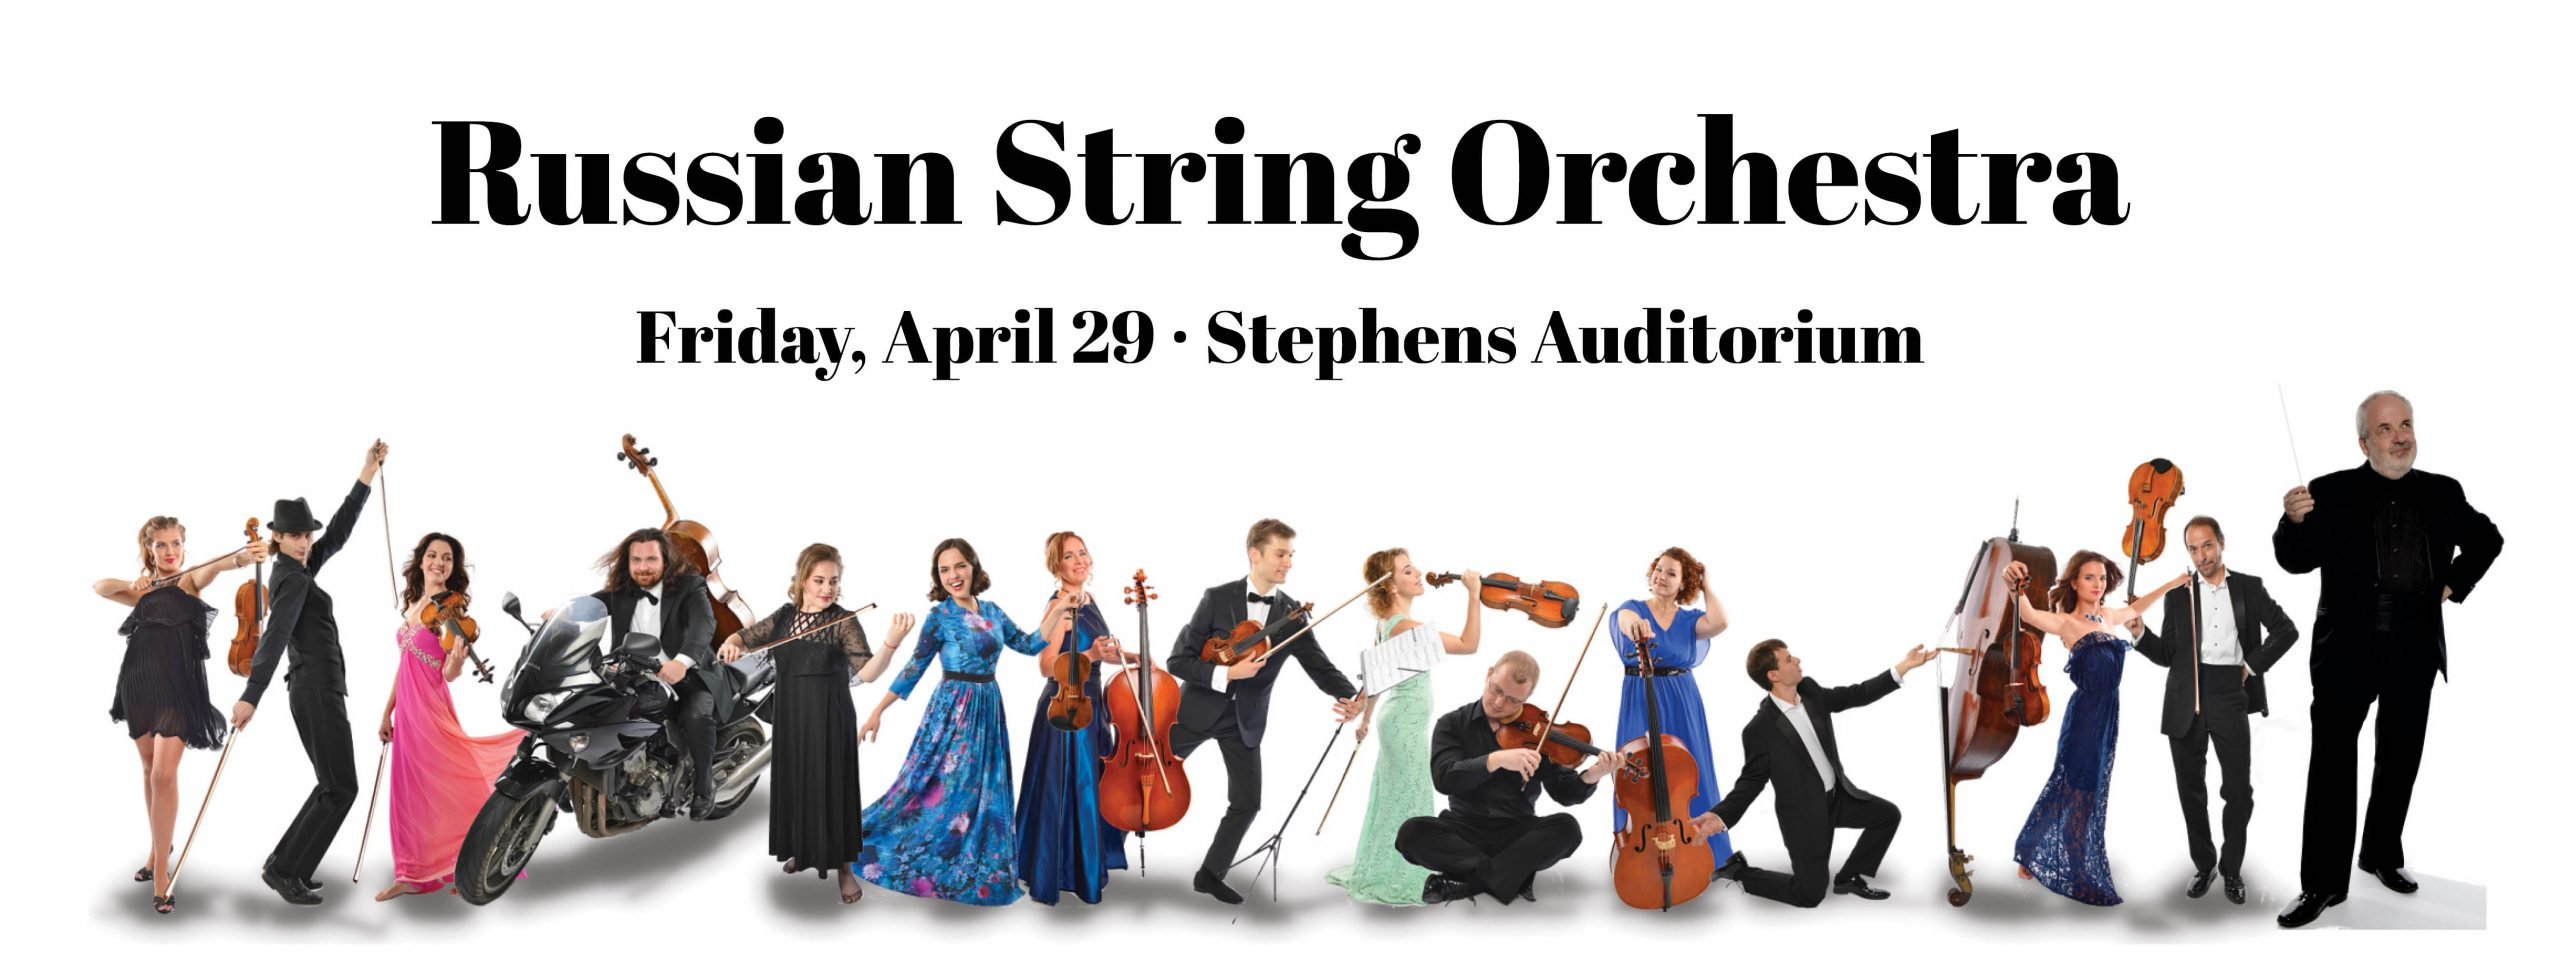 Russian String Orchestra